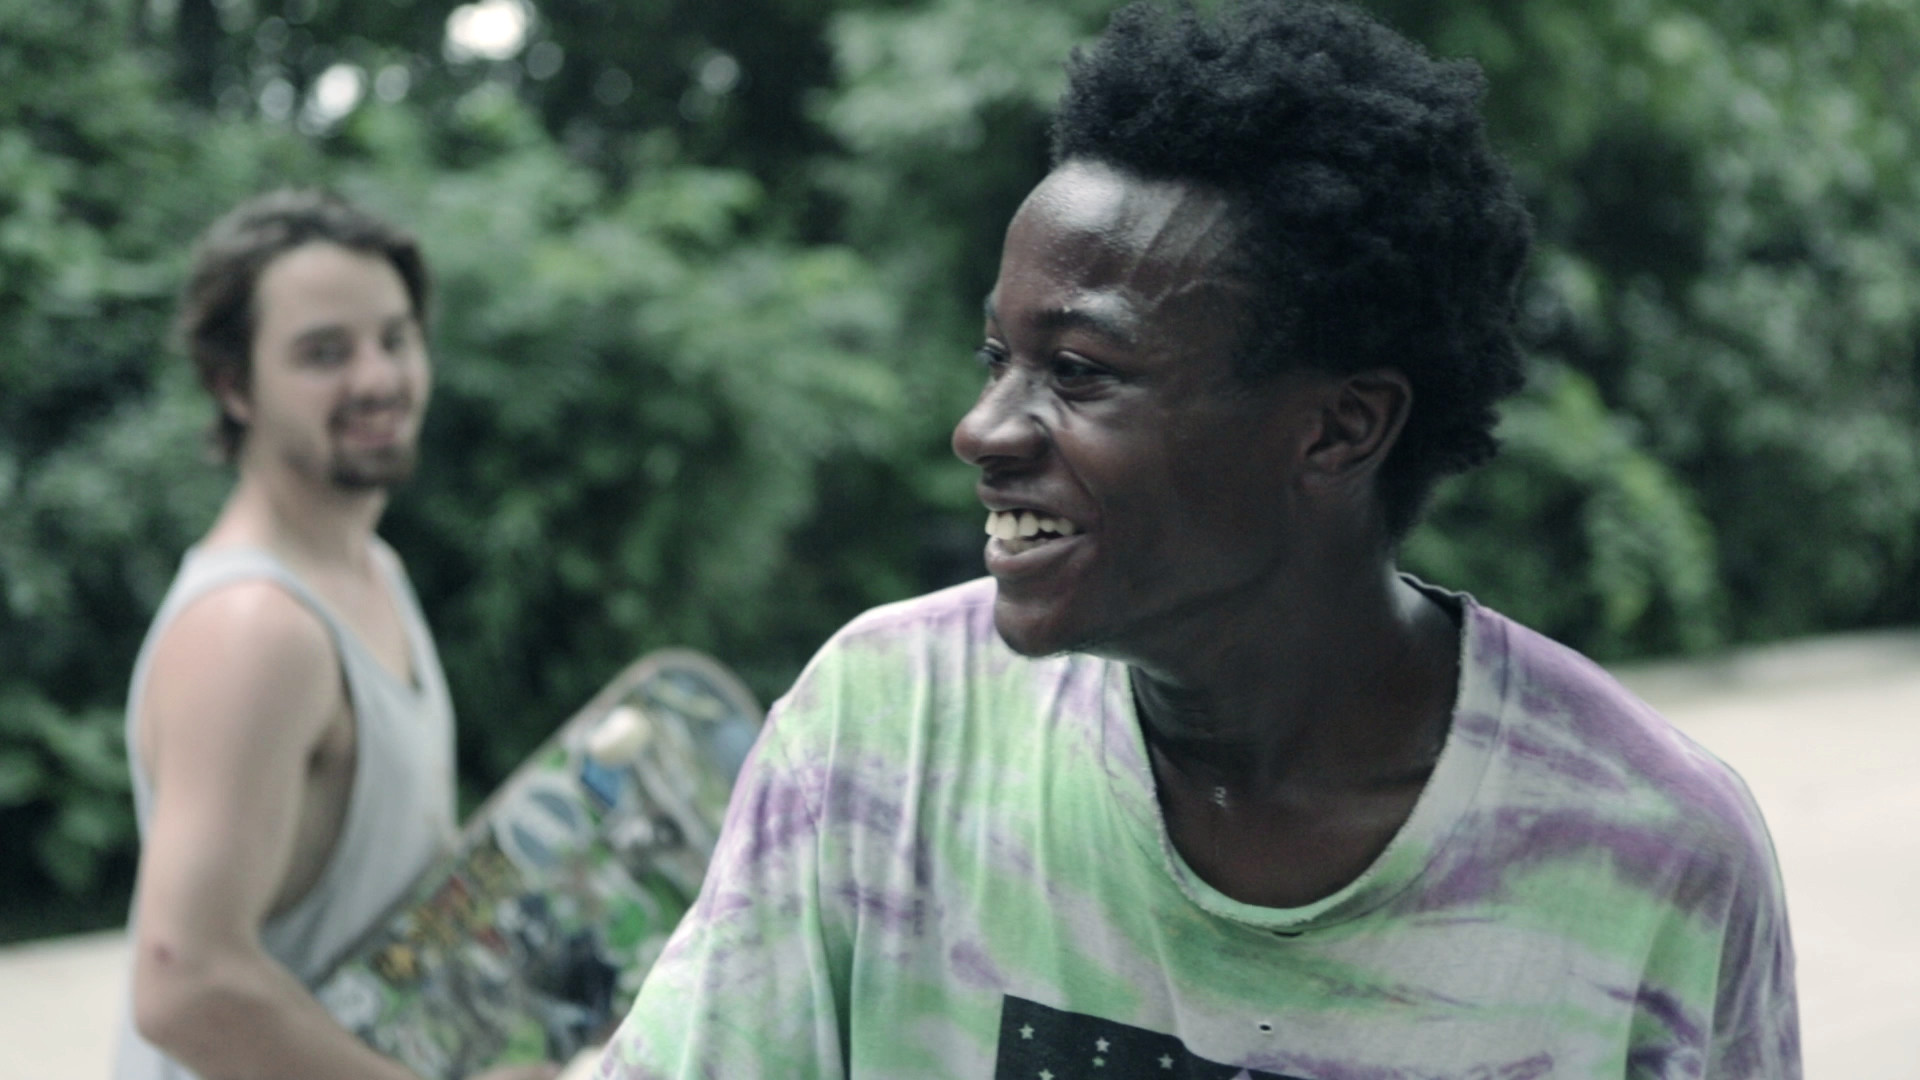 A still of Keire smiling from the documentary  Minding the Gap  (2018) directed by Bing Liu. Screening on Saturday, March 16th at 6 PM in UO's EMU Redwood Theater. Image courtesy of DisOrient Asian American Film Festival.